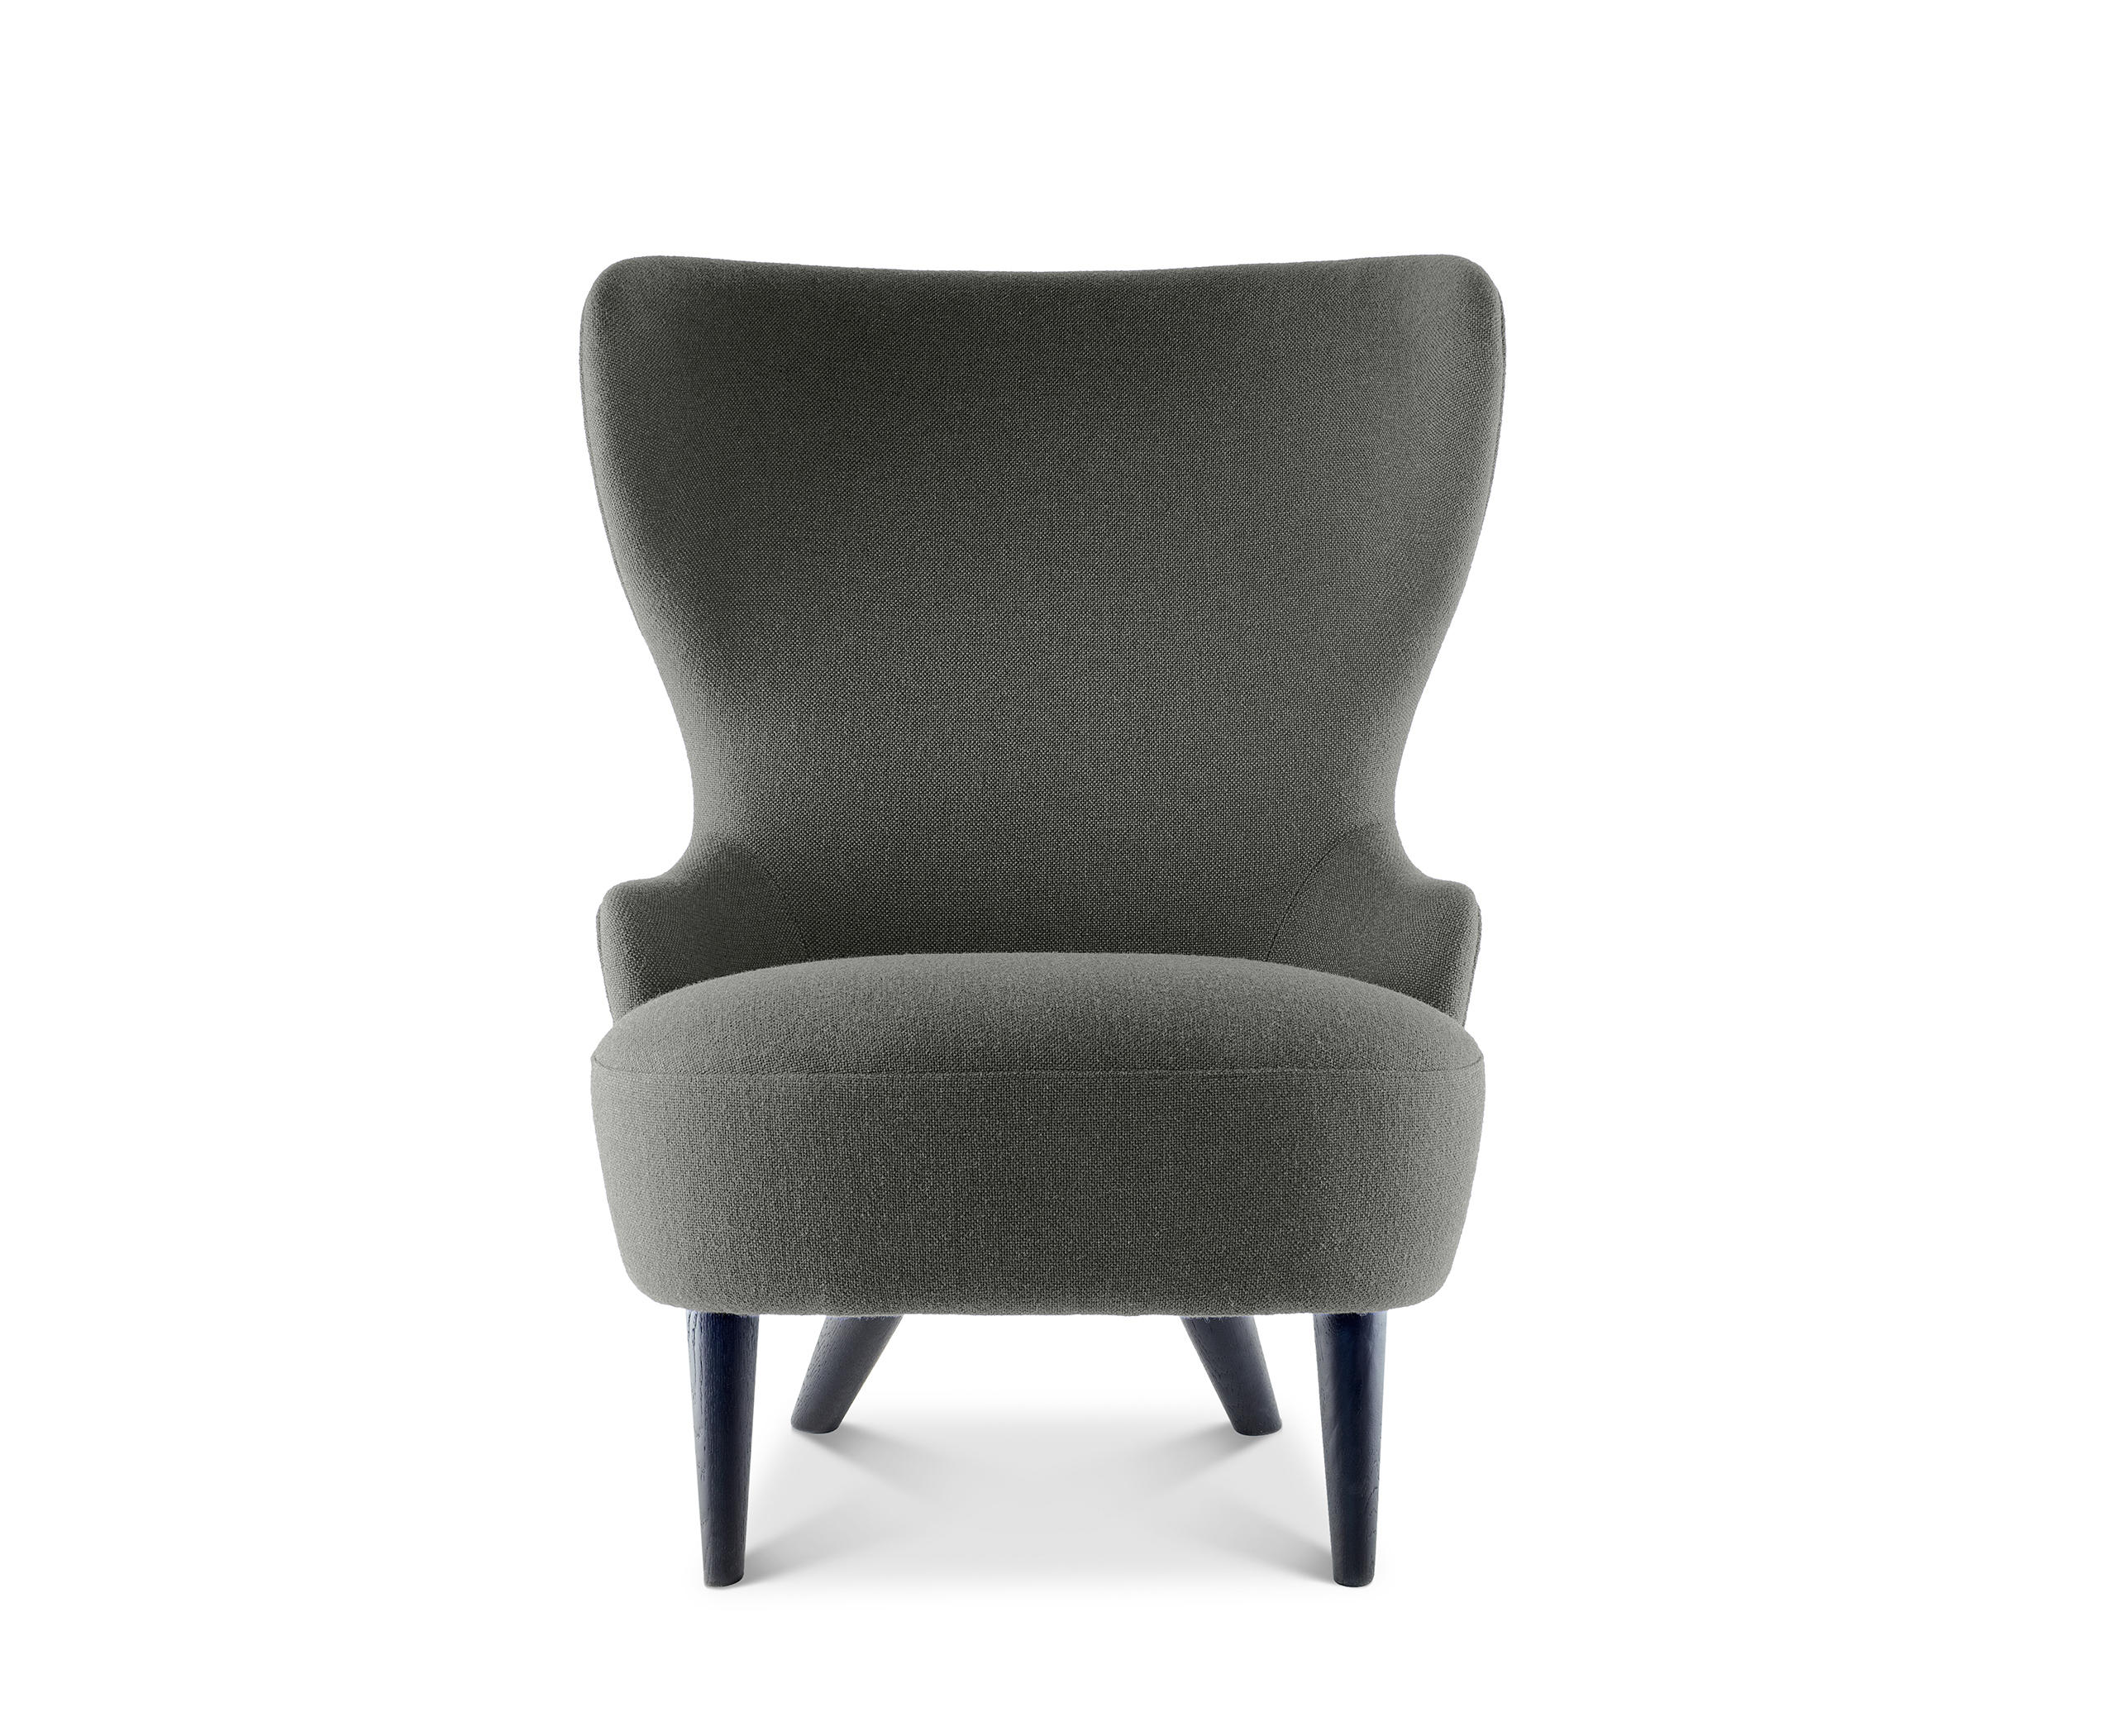 Wingback chair tom dixon -  Micro Wingback Chair Black Leg Hallingdal 65 By Tom Dixon Lounge Chairs